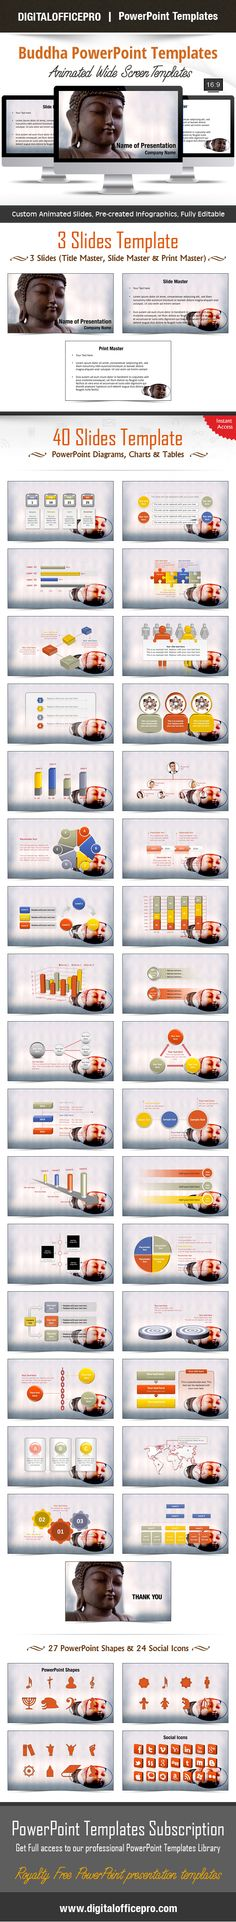 Flying Keyboard PowerPoint Template Backgrounds | Charts ...